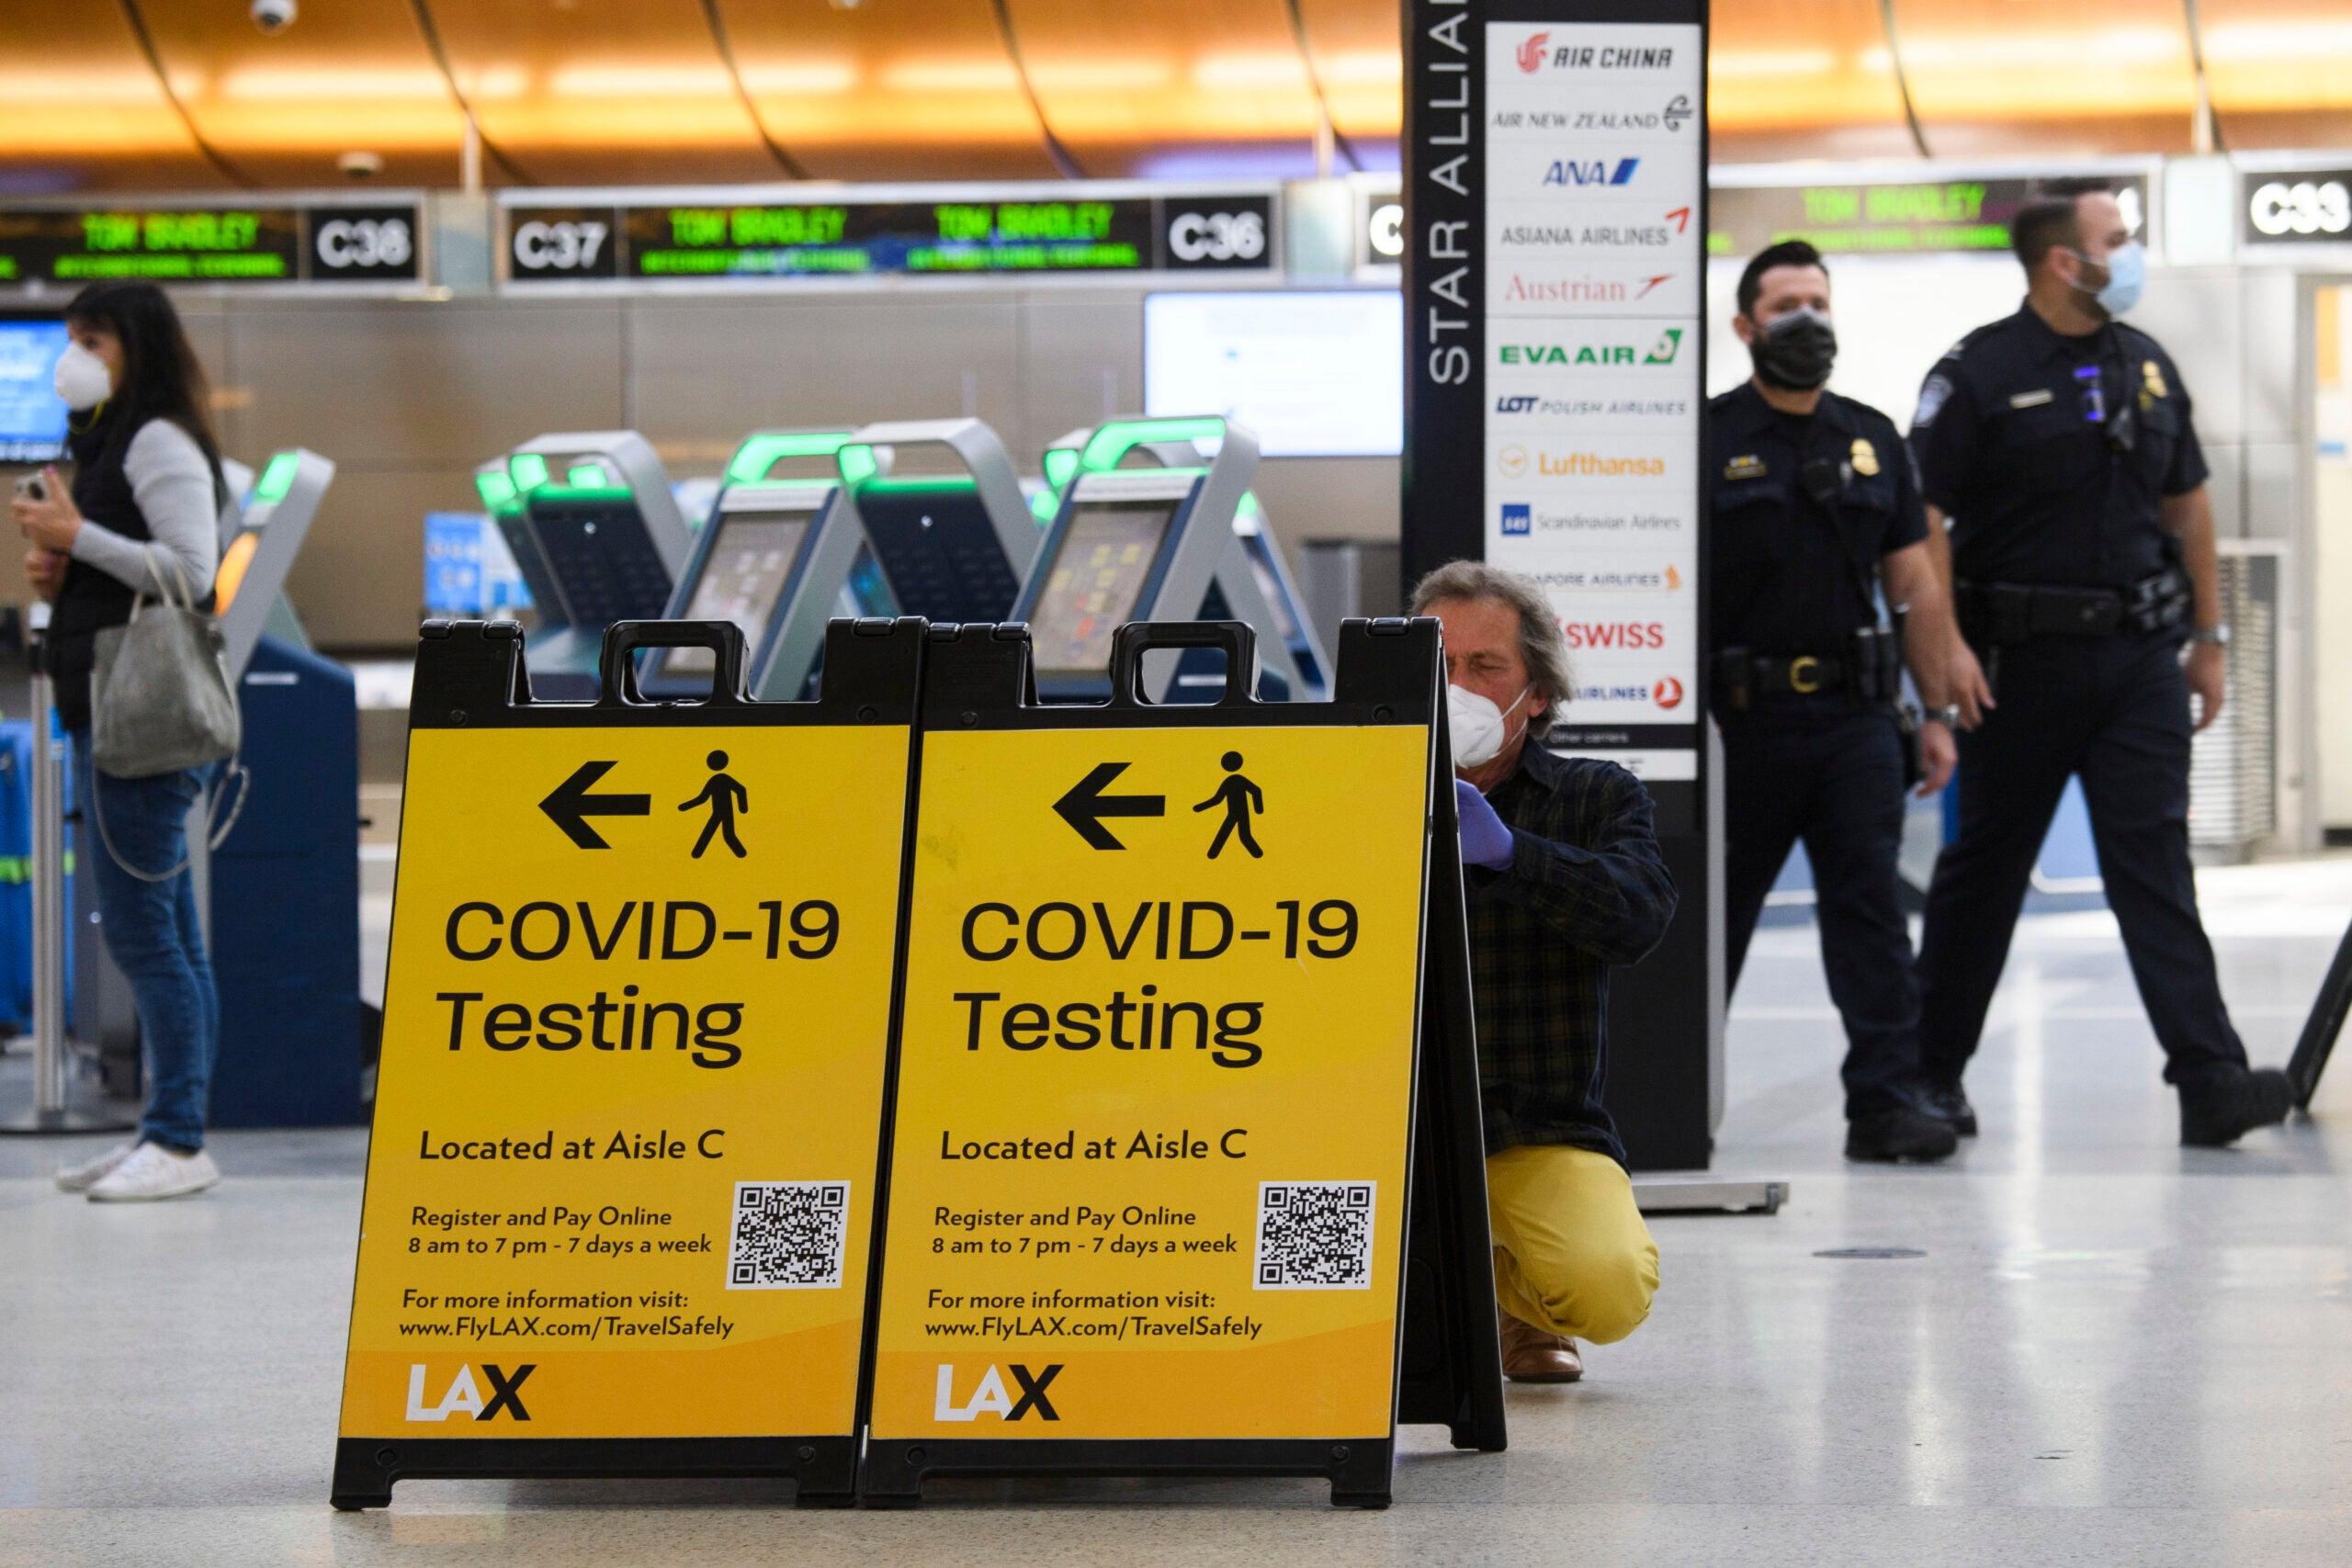 CDC director says pre-departure COVID-19 testing for domestic travel may reduce transmission